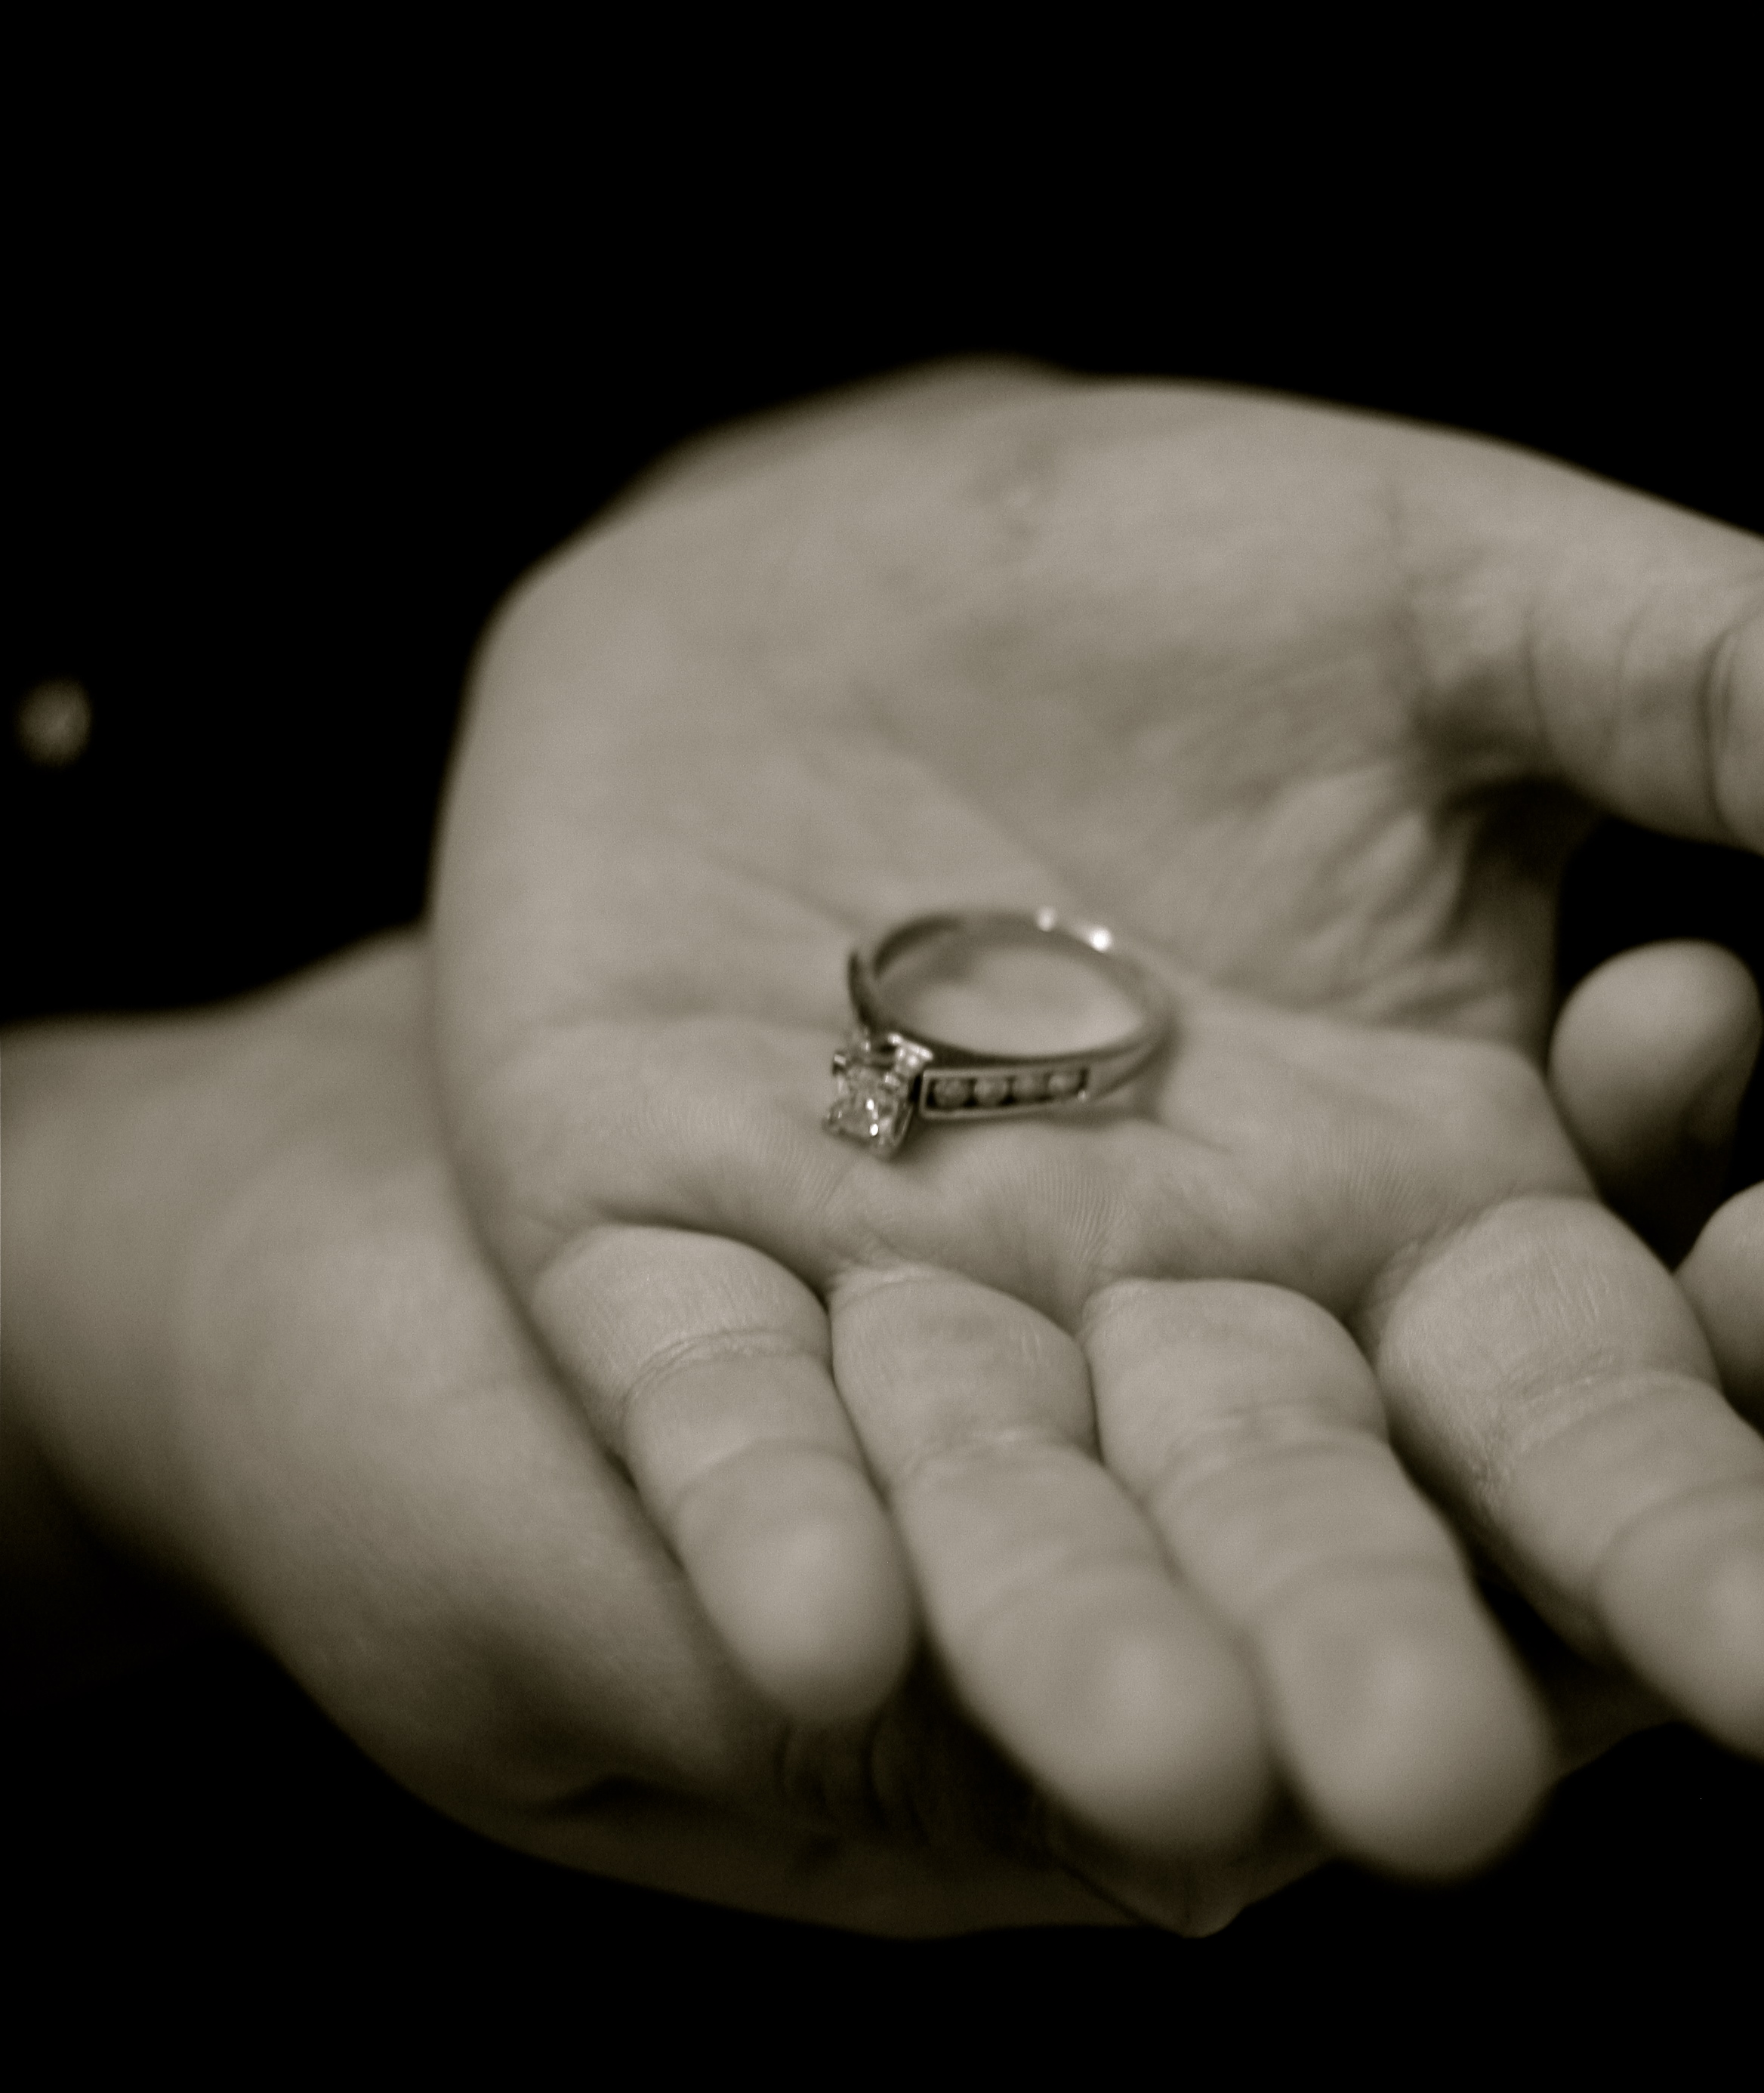 Daughter's hands holding mom's ring